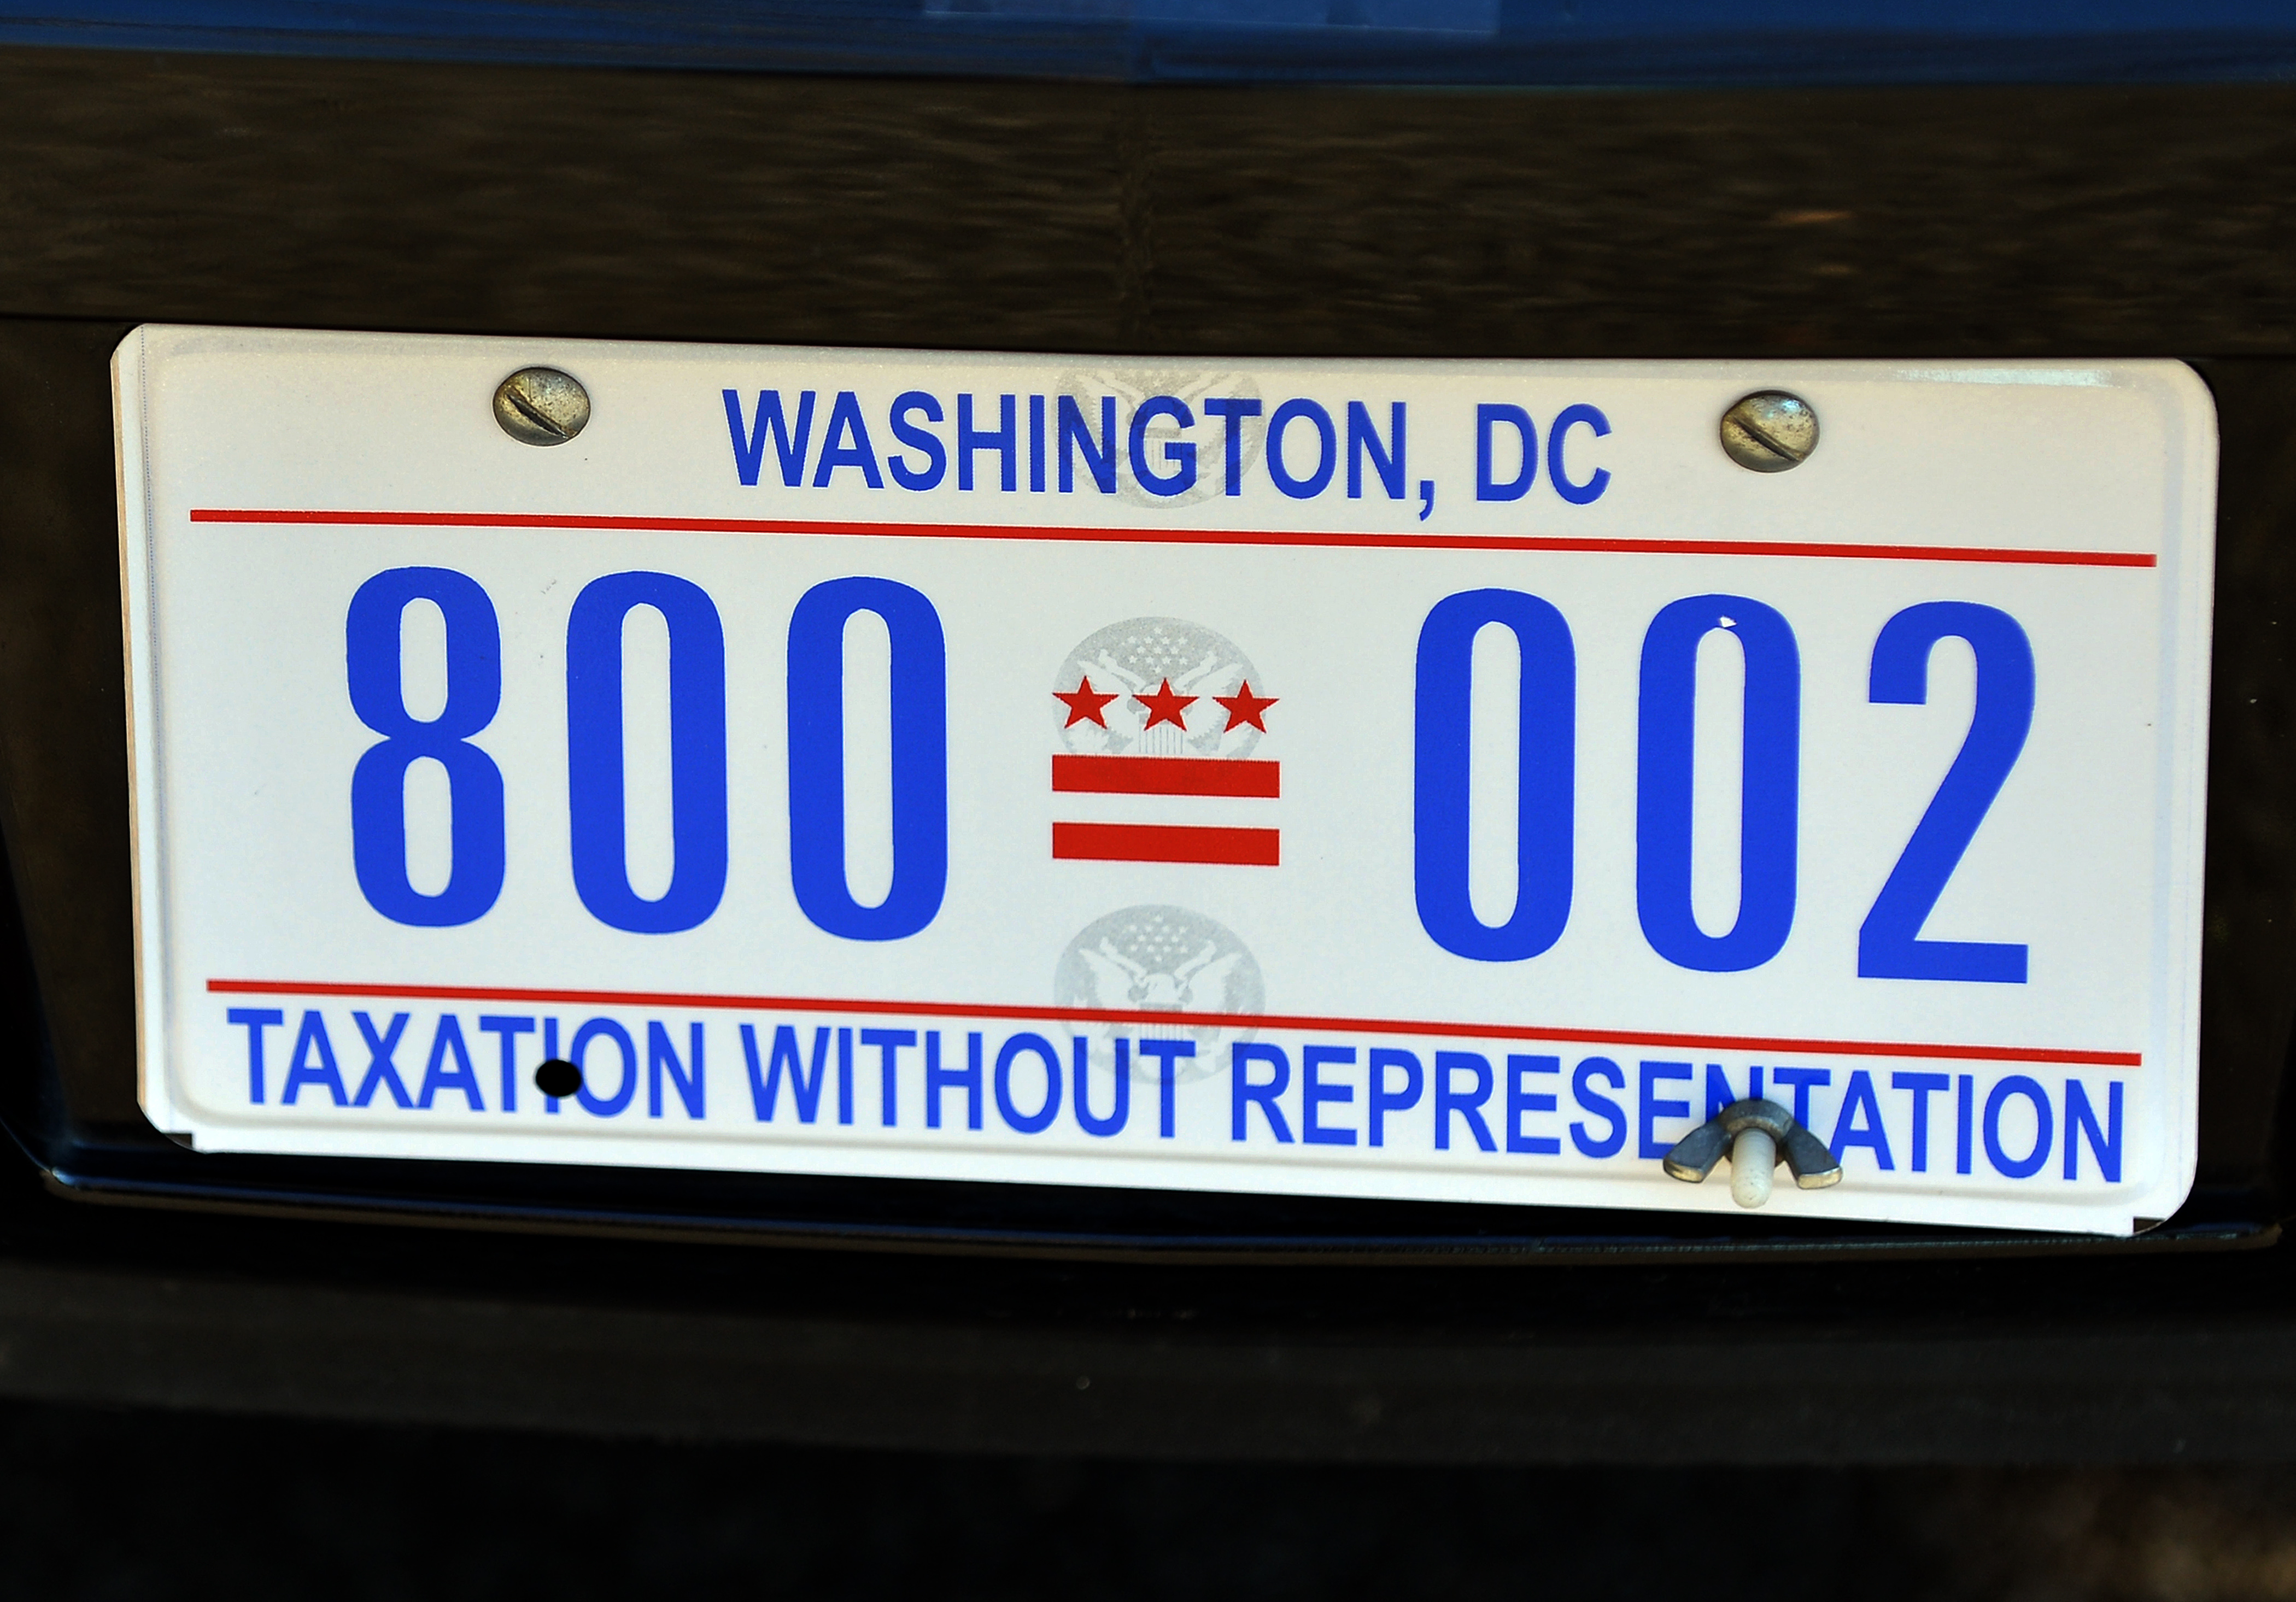 """The license plate of US President Barack Obama's limo is pictured on January 19, 2013 in Washington DC. Obama's limousine is now adorned withe """"Taxation Without Representation"""" license plates. The DC government authorized the plates to protest the fact that the District of Columbia does not have a vote in Congress. AFP PHOTO/Jewel Samad (JEWEL SAMAD/AFP via Getty Images)"""